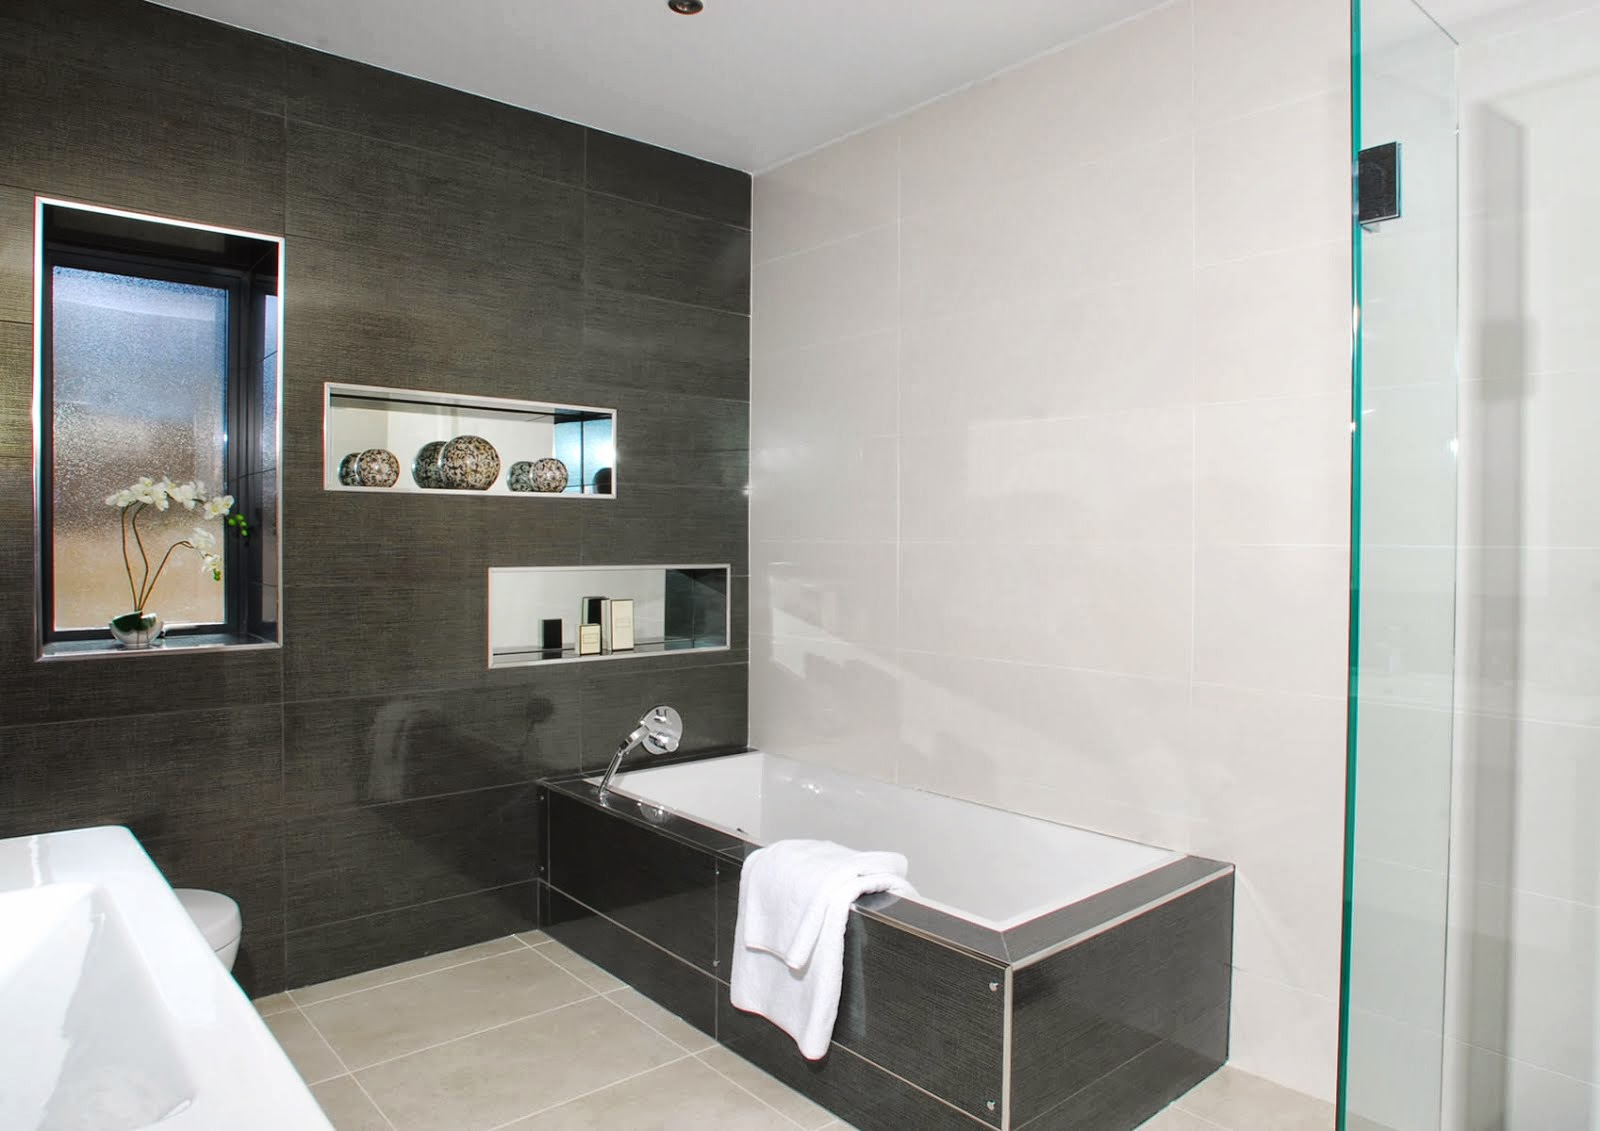 Bathroom design ideas uk for Bathroom design ideas